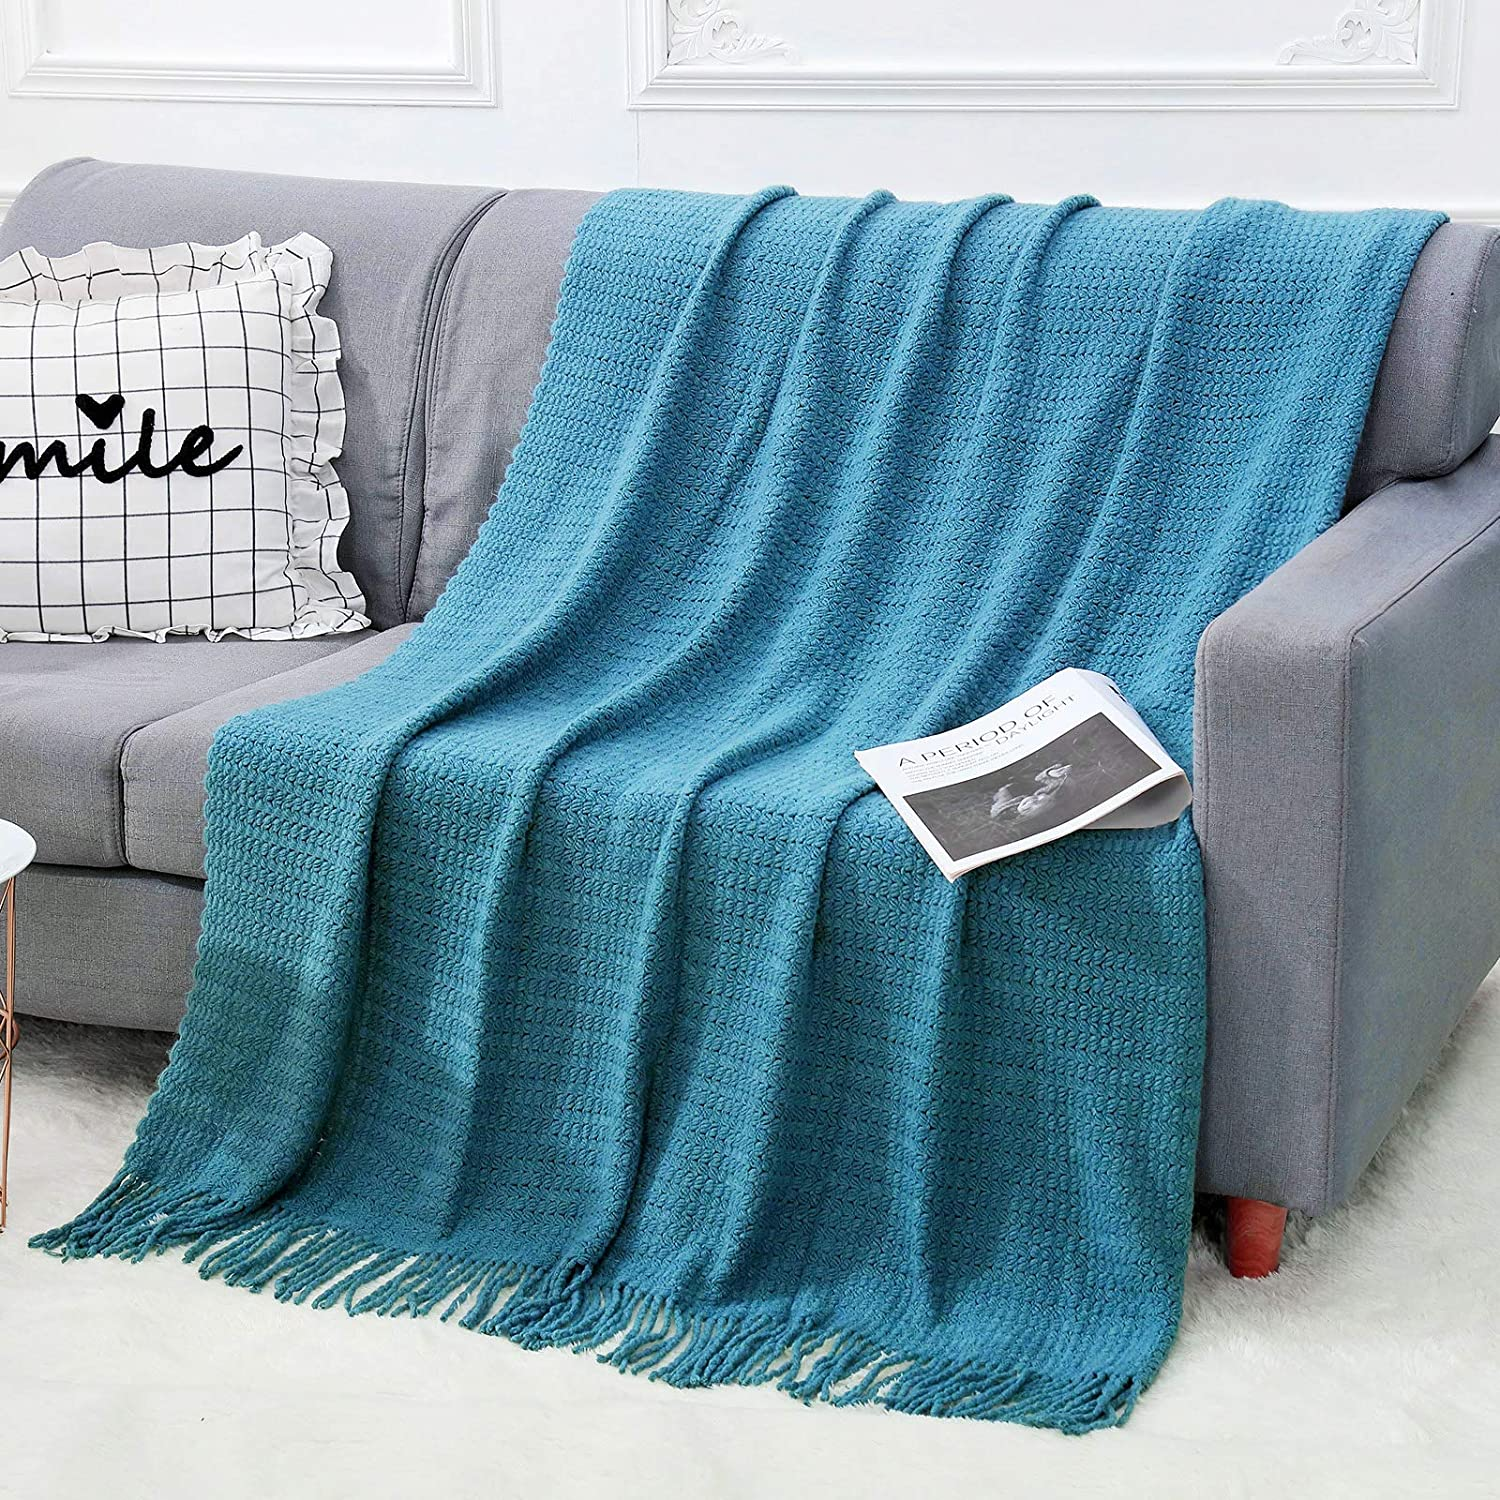 NTBAY Cotton Sumptuous Extra Soft Throw Blanket Decorative Knitted Blankets